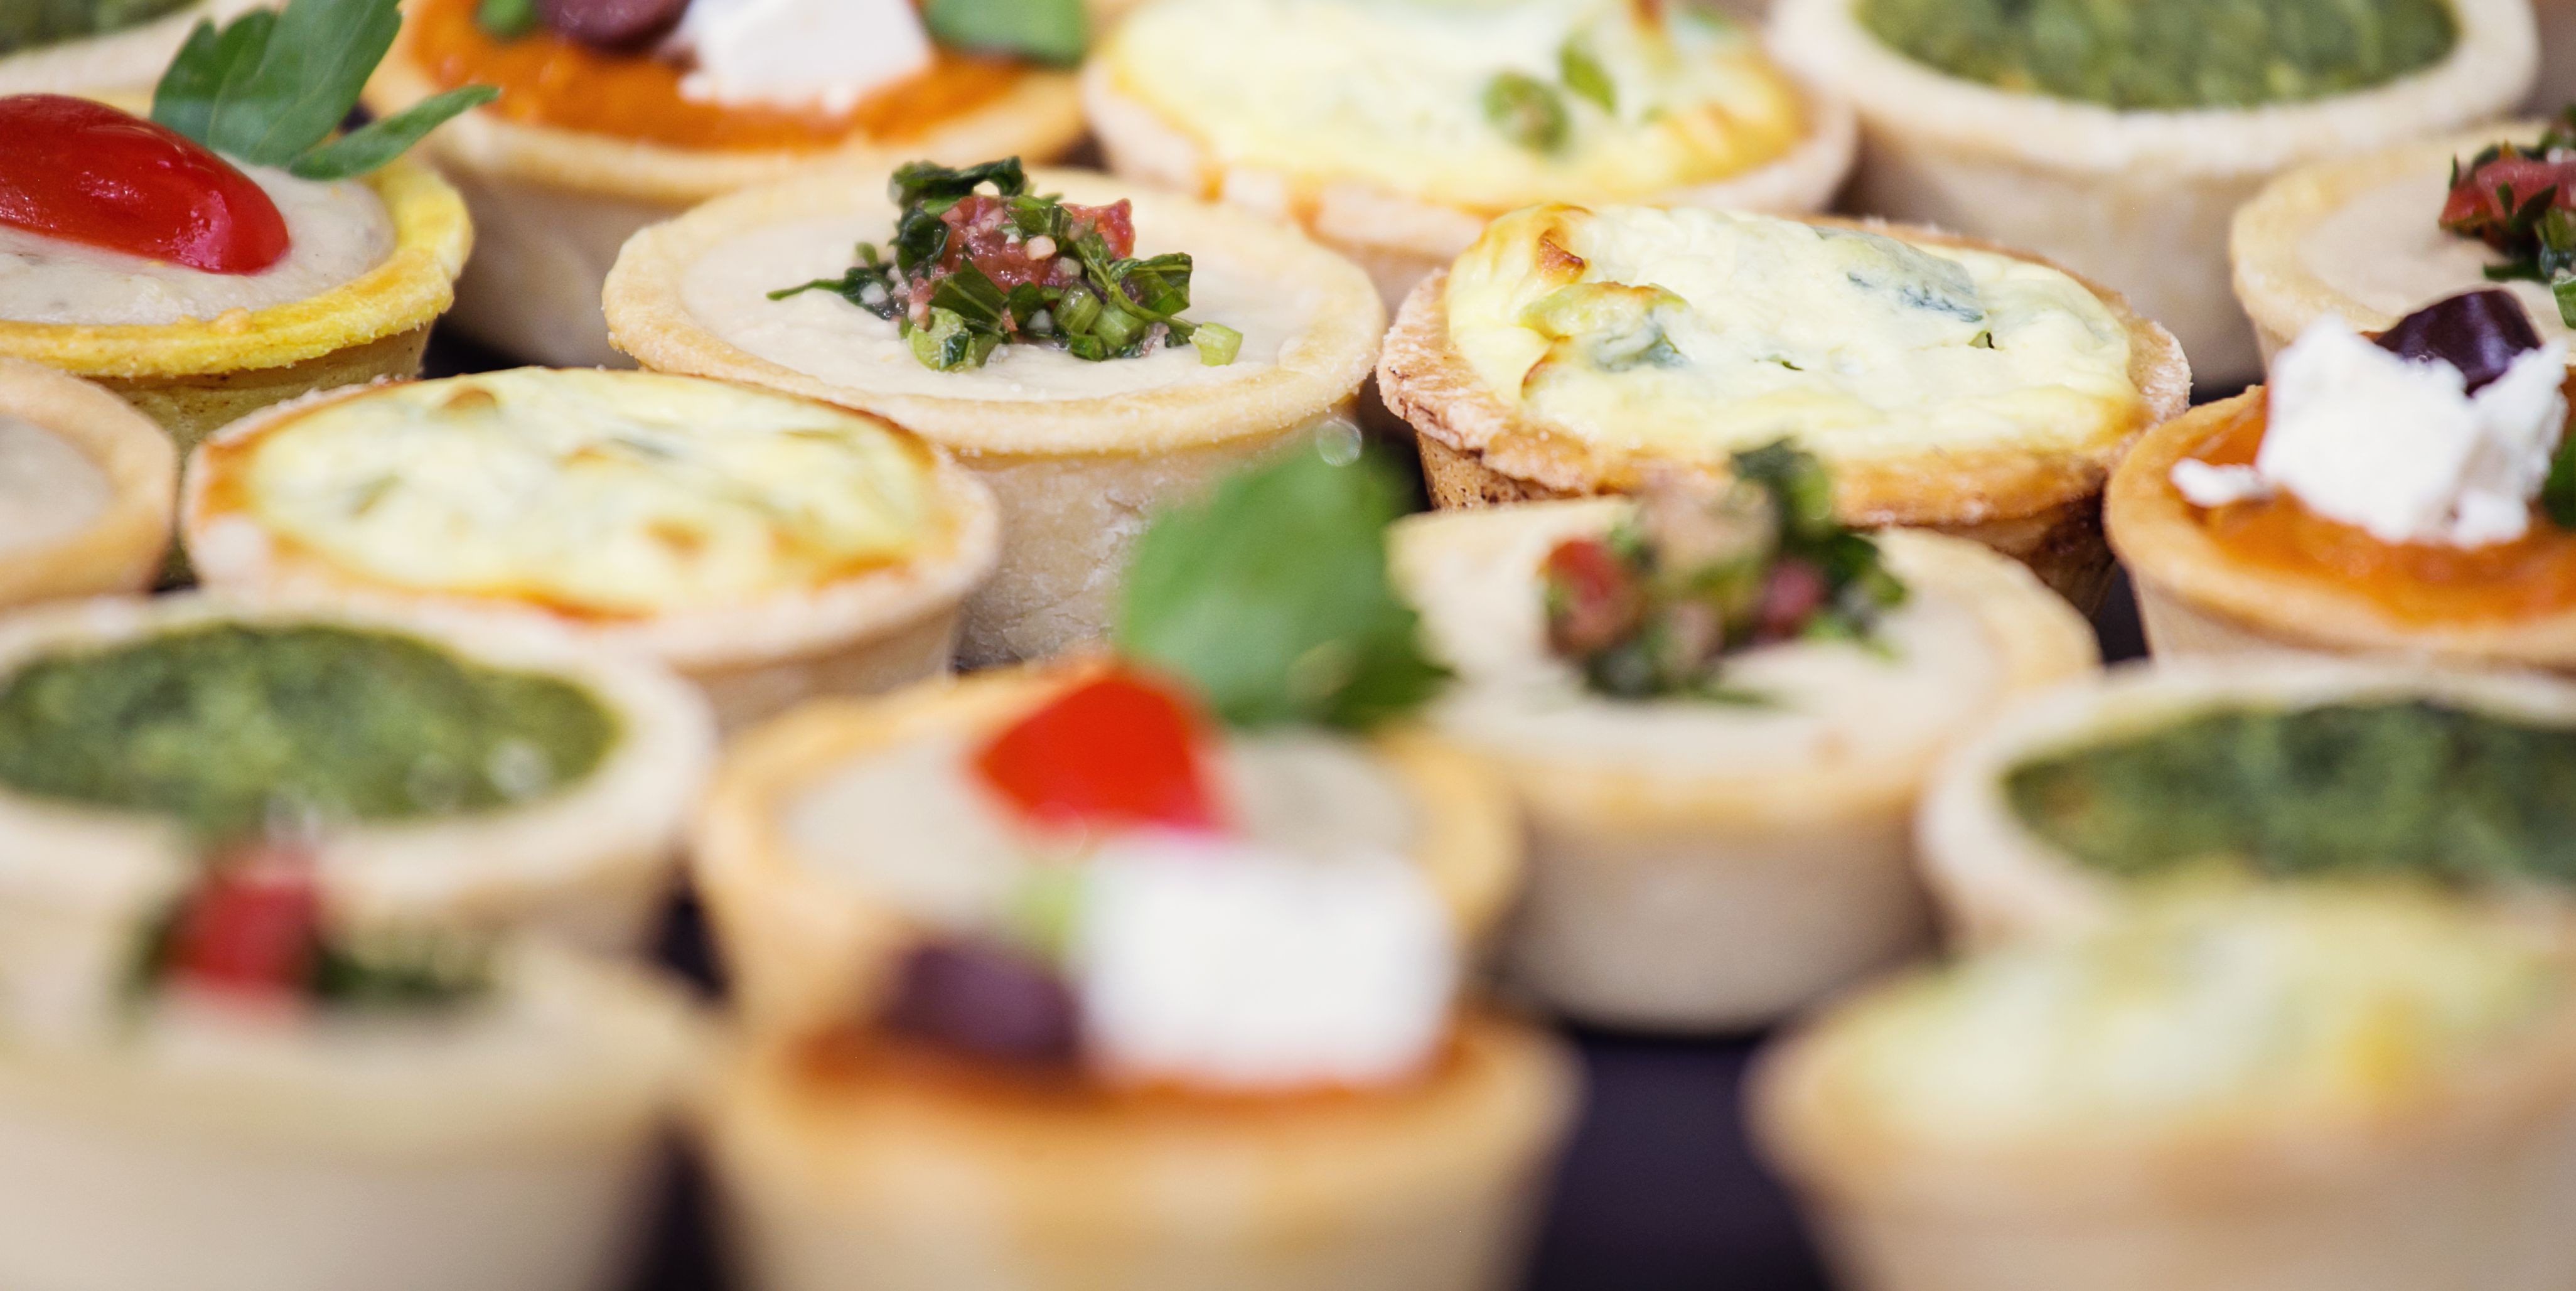 Here's What Appetizers You Should Avoid This Holiday Season